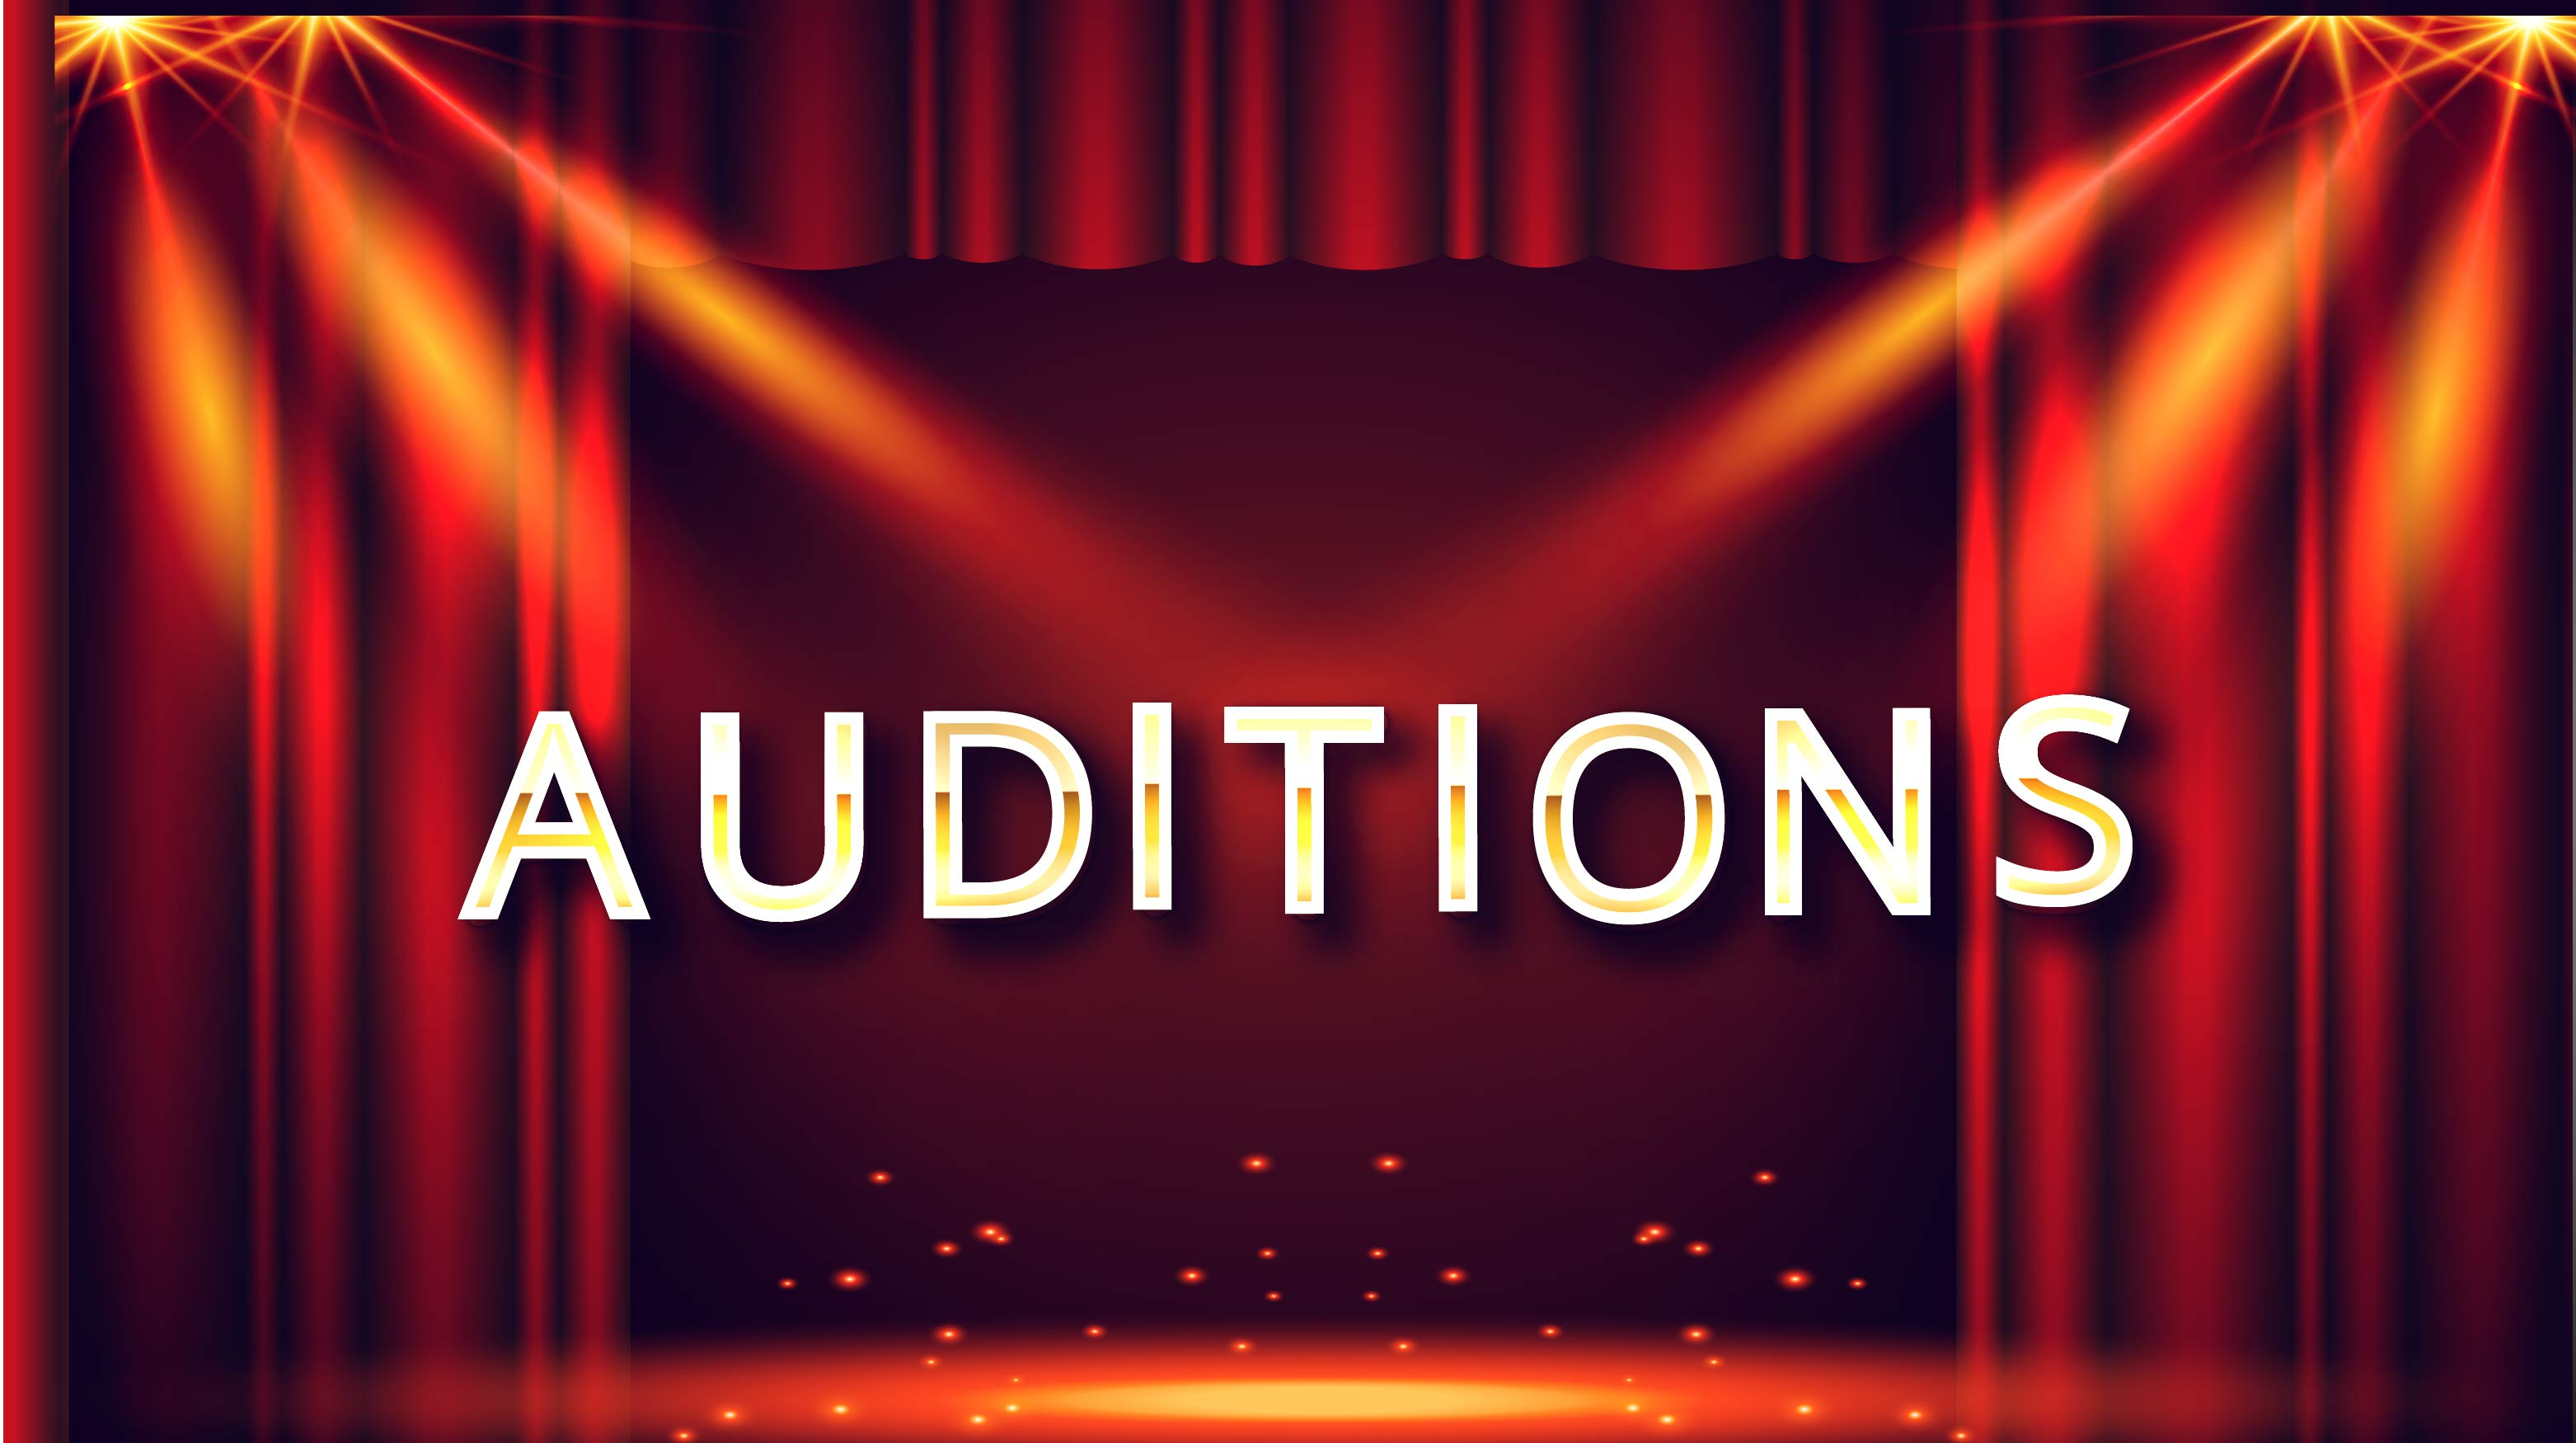 Auditions: 1940's Radio Show